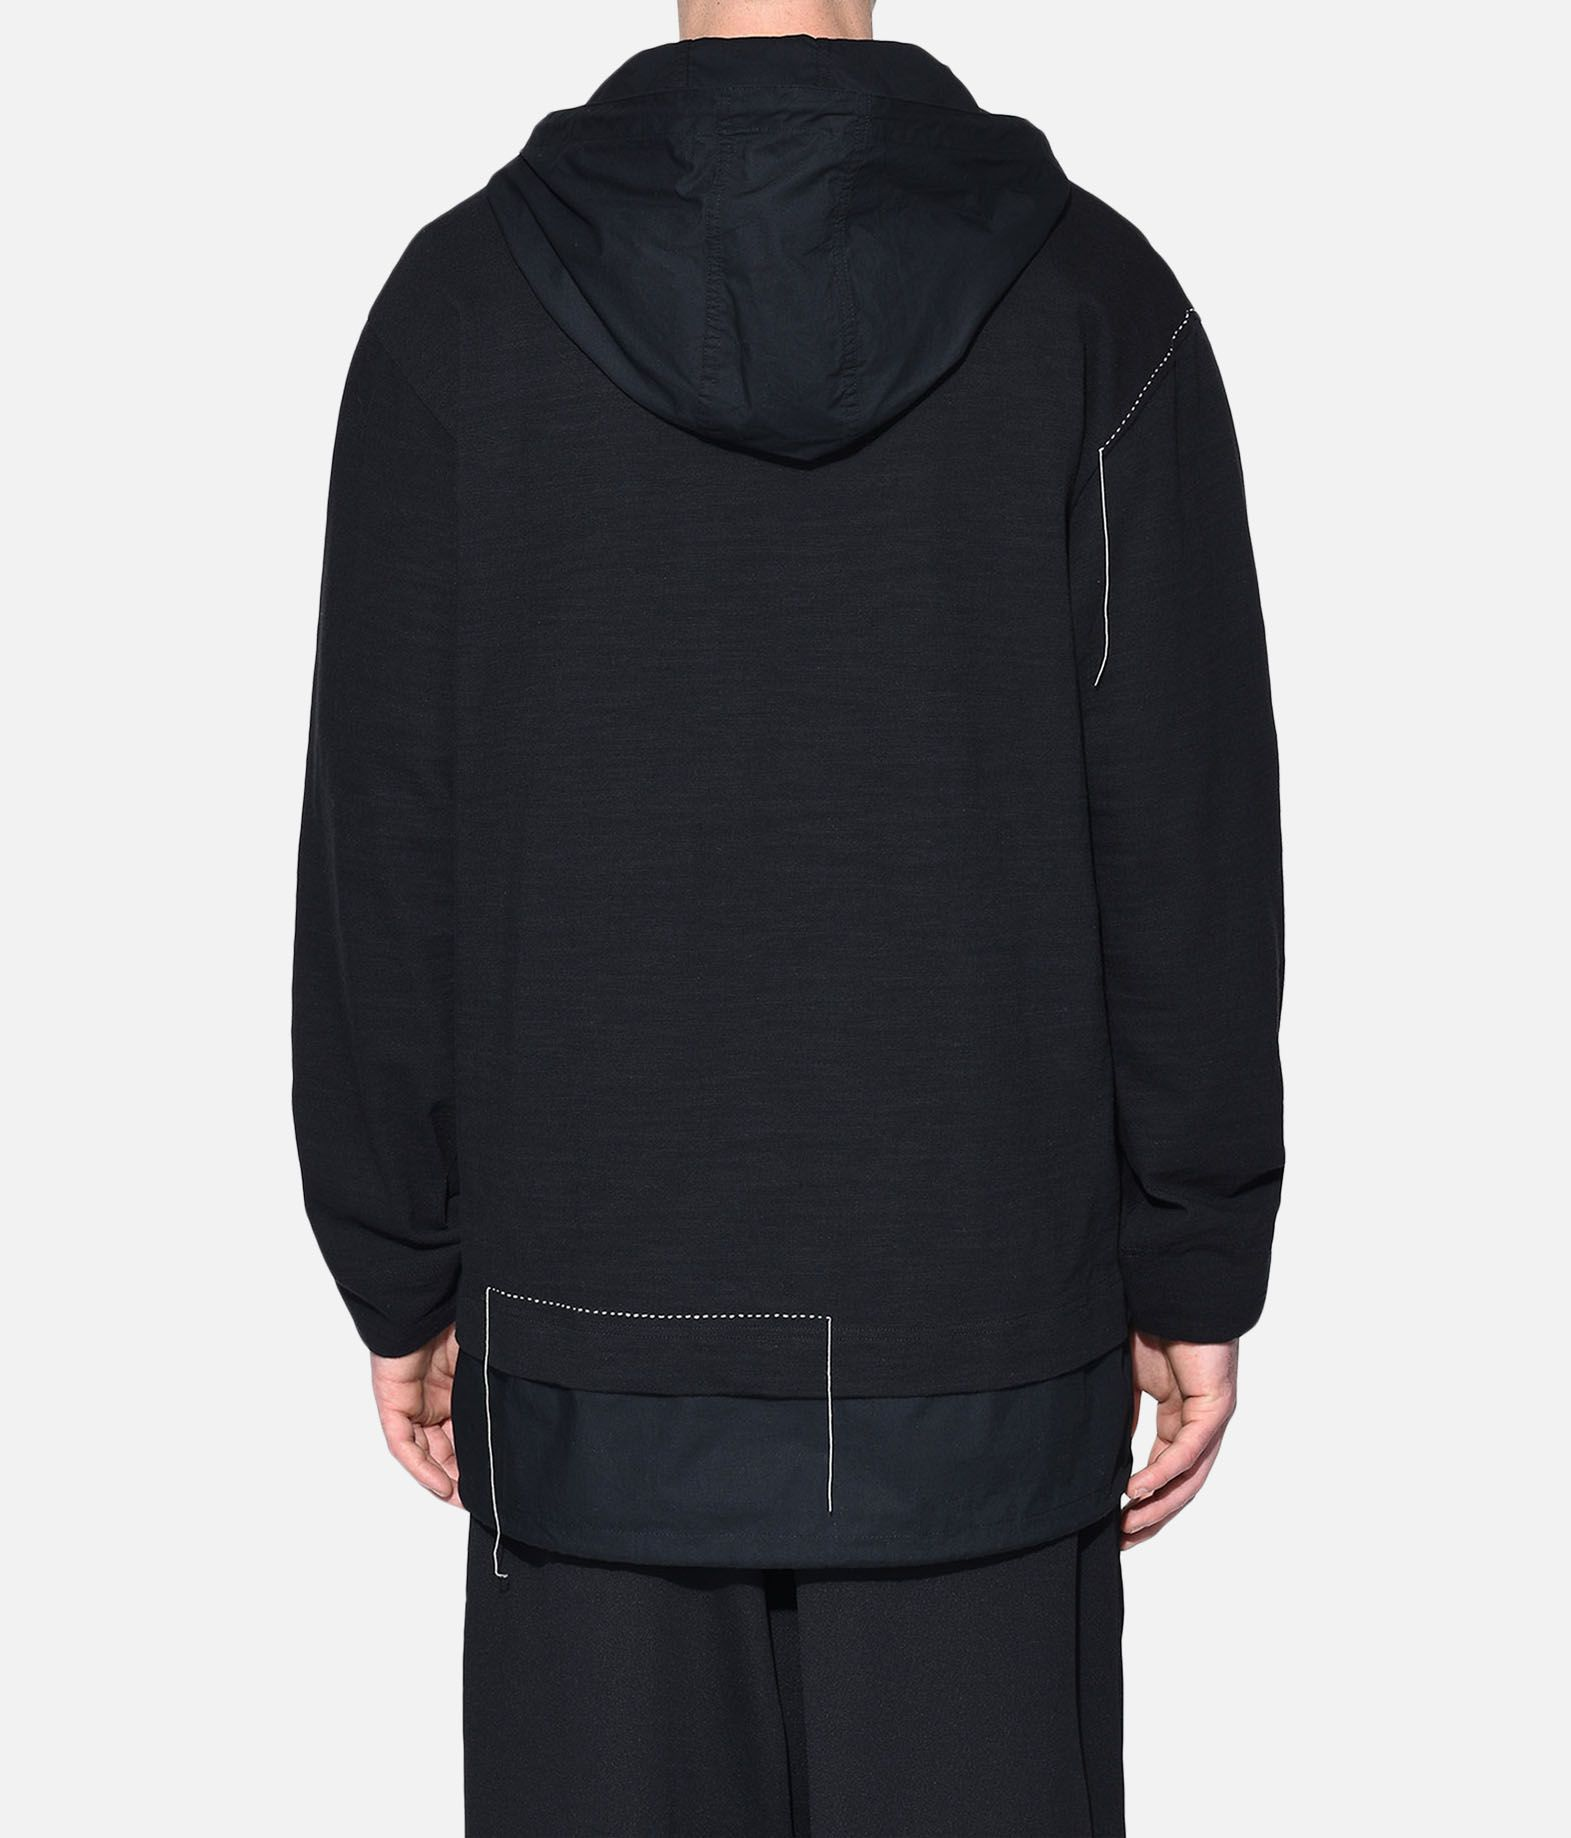 Y-3 Y-3 Sashiko Layered Hoodie Hooded sweatshirt Man d